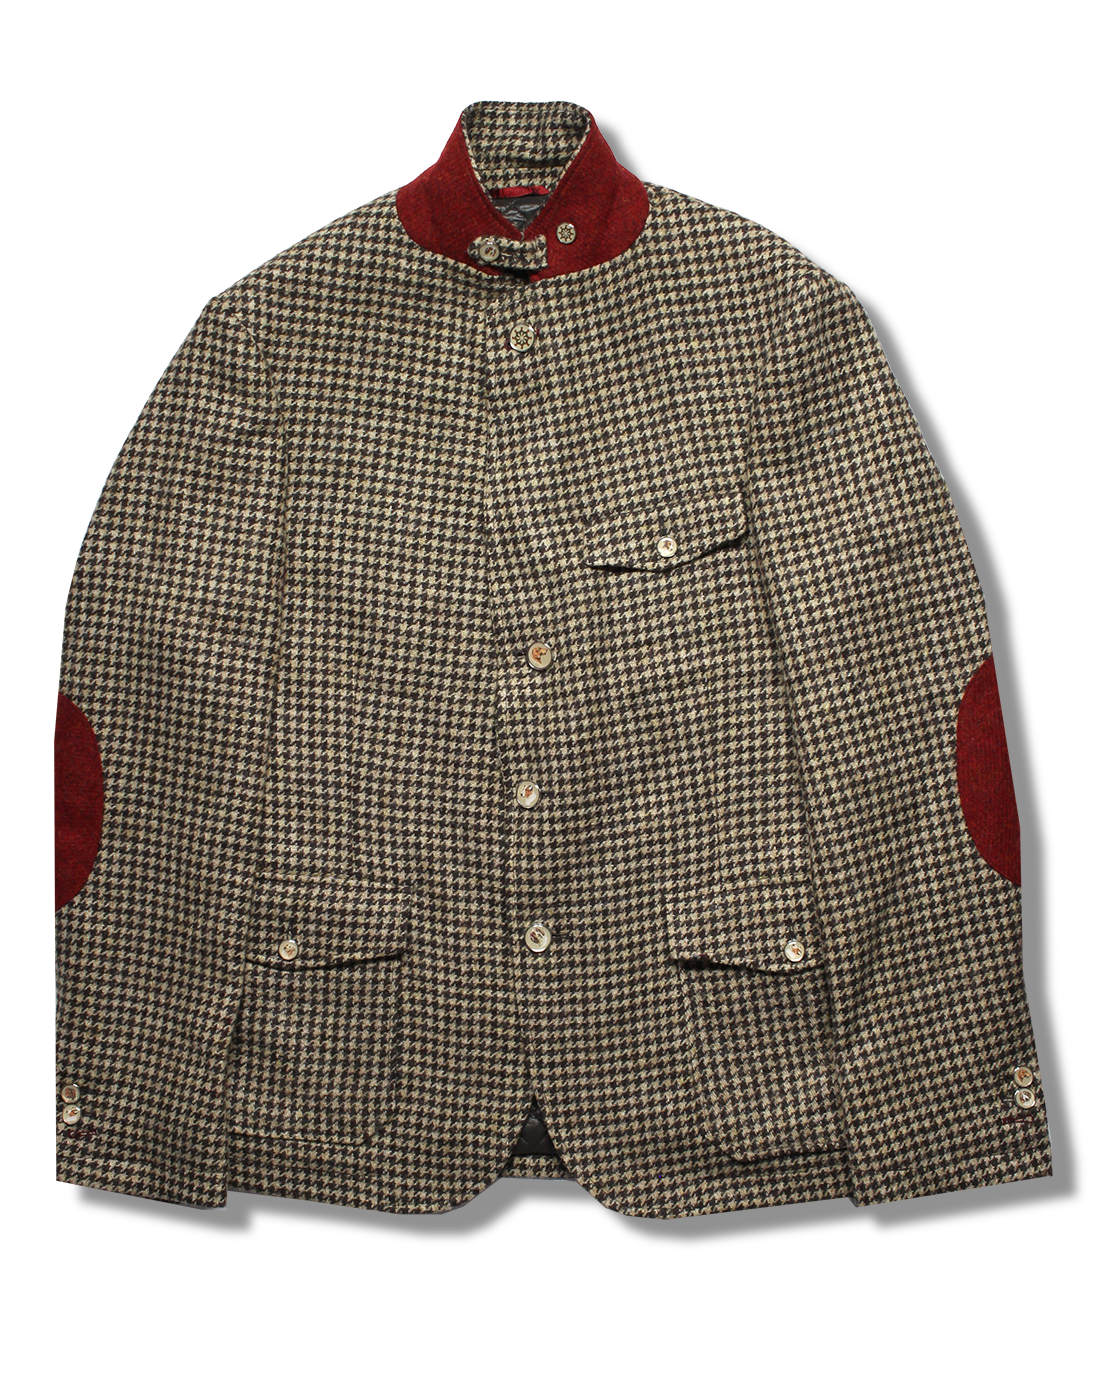 The DS Jacket - Holland Esquire